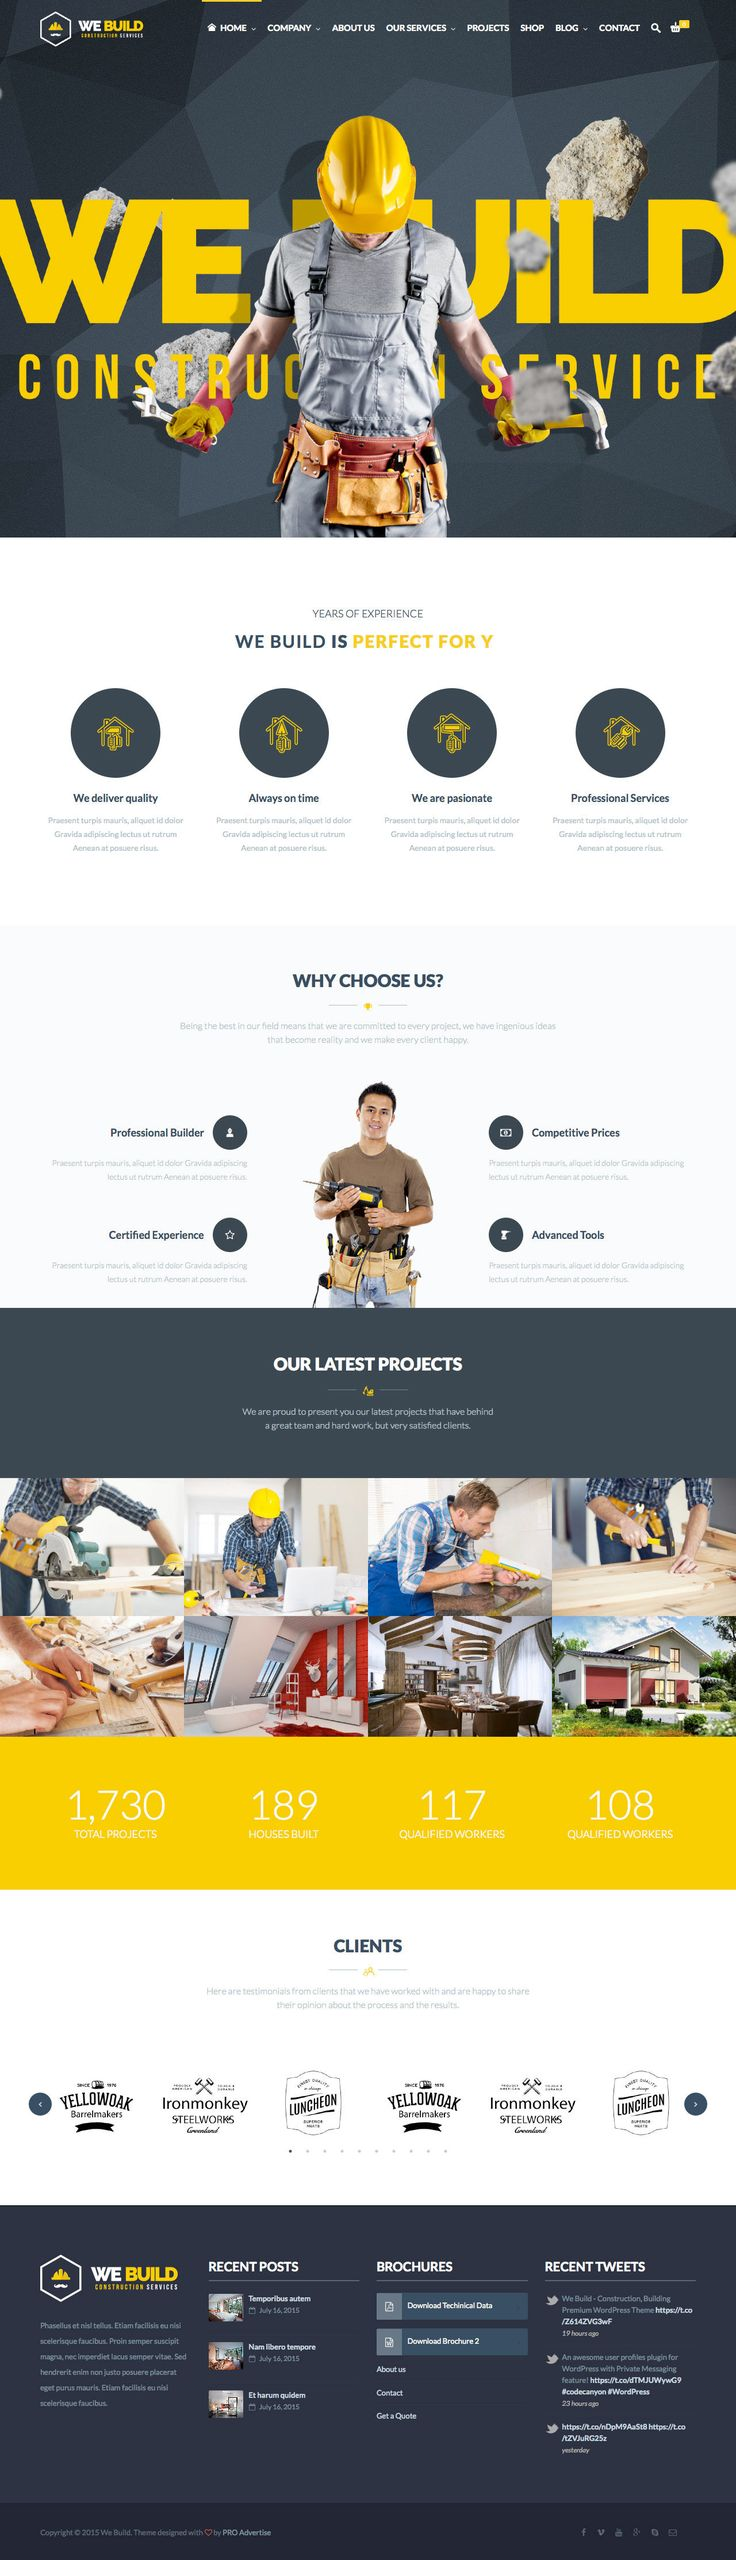 We Build (More web design inspiration at topdesigninspiration.com) #design #web…